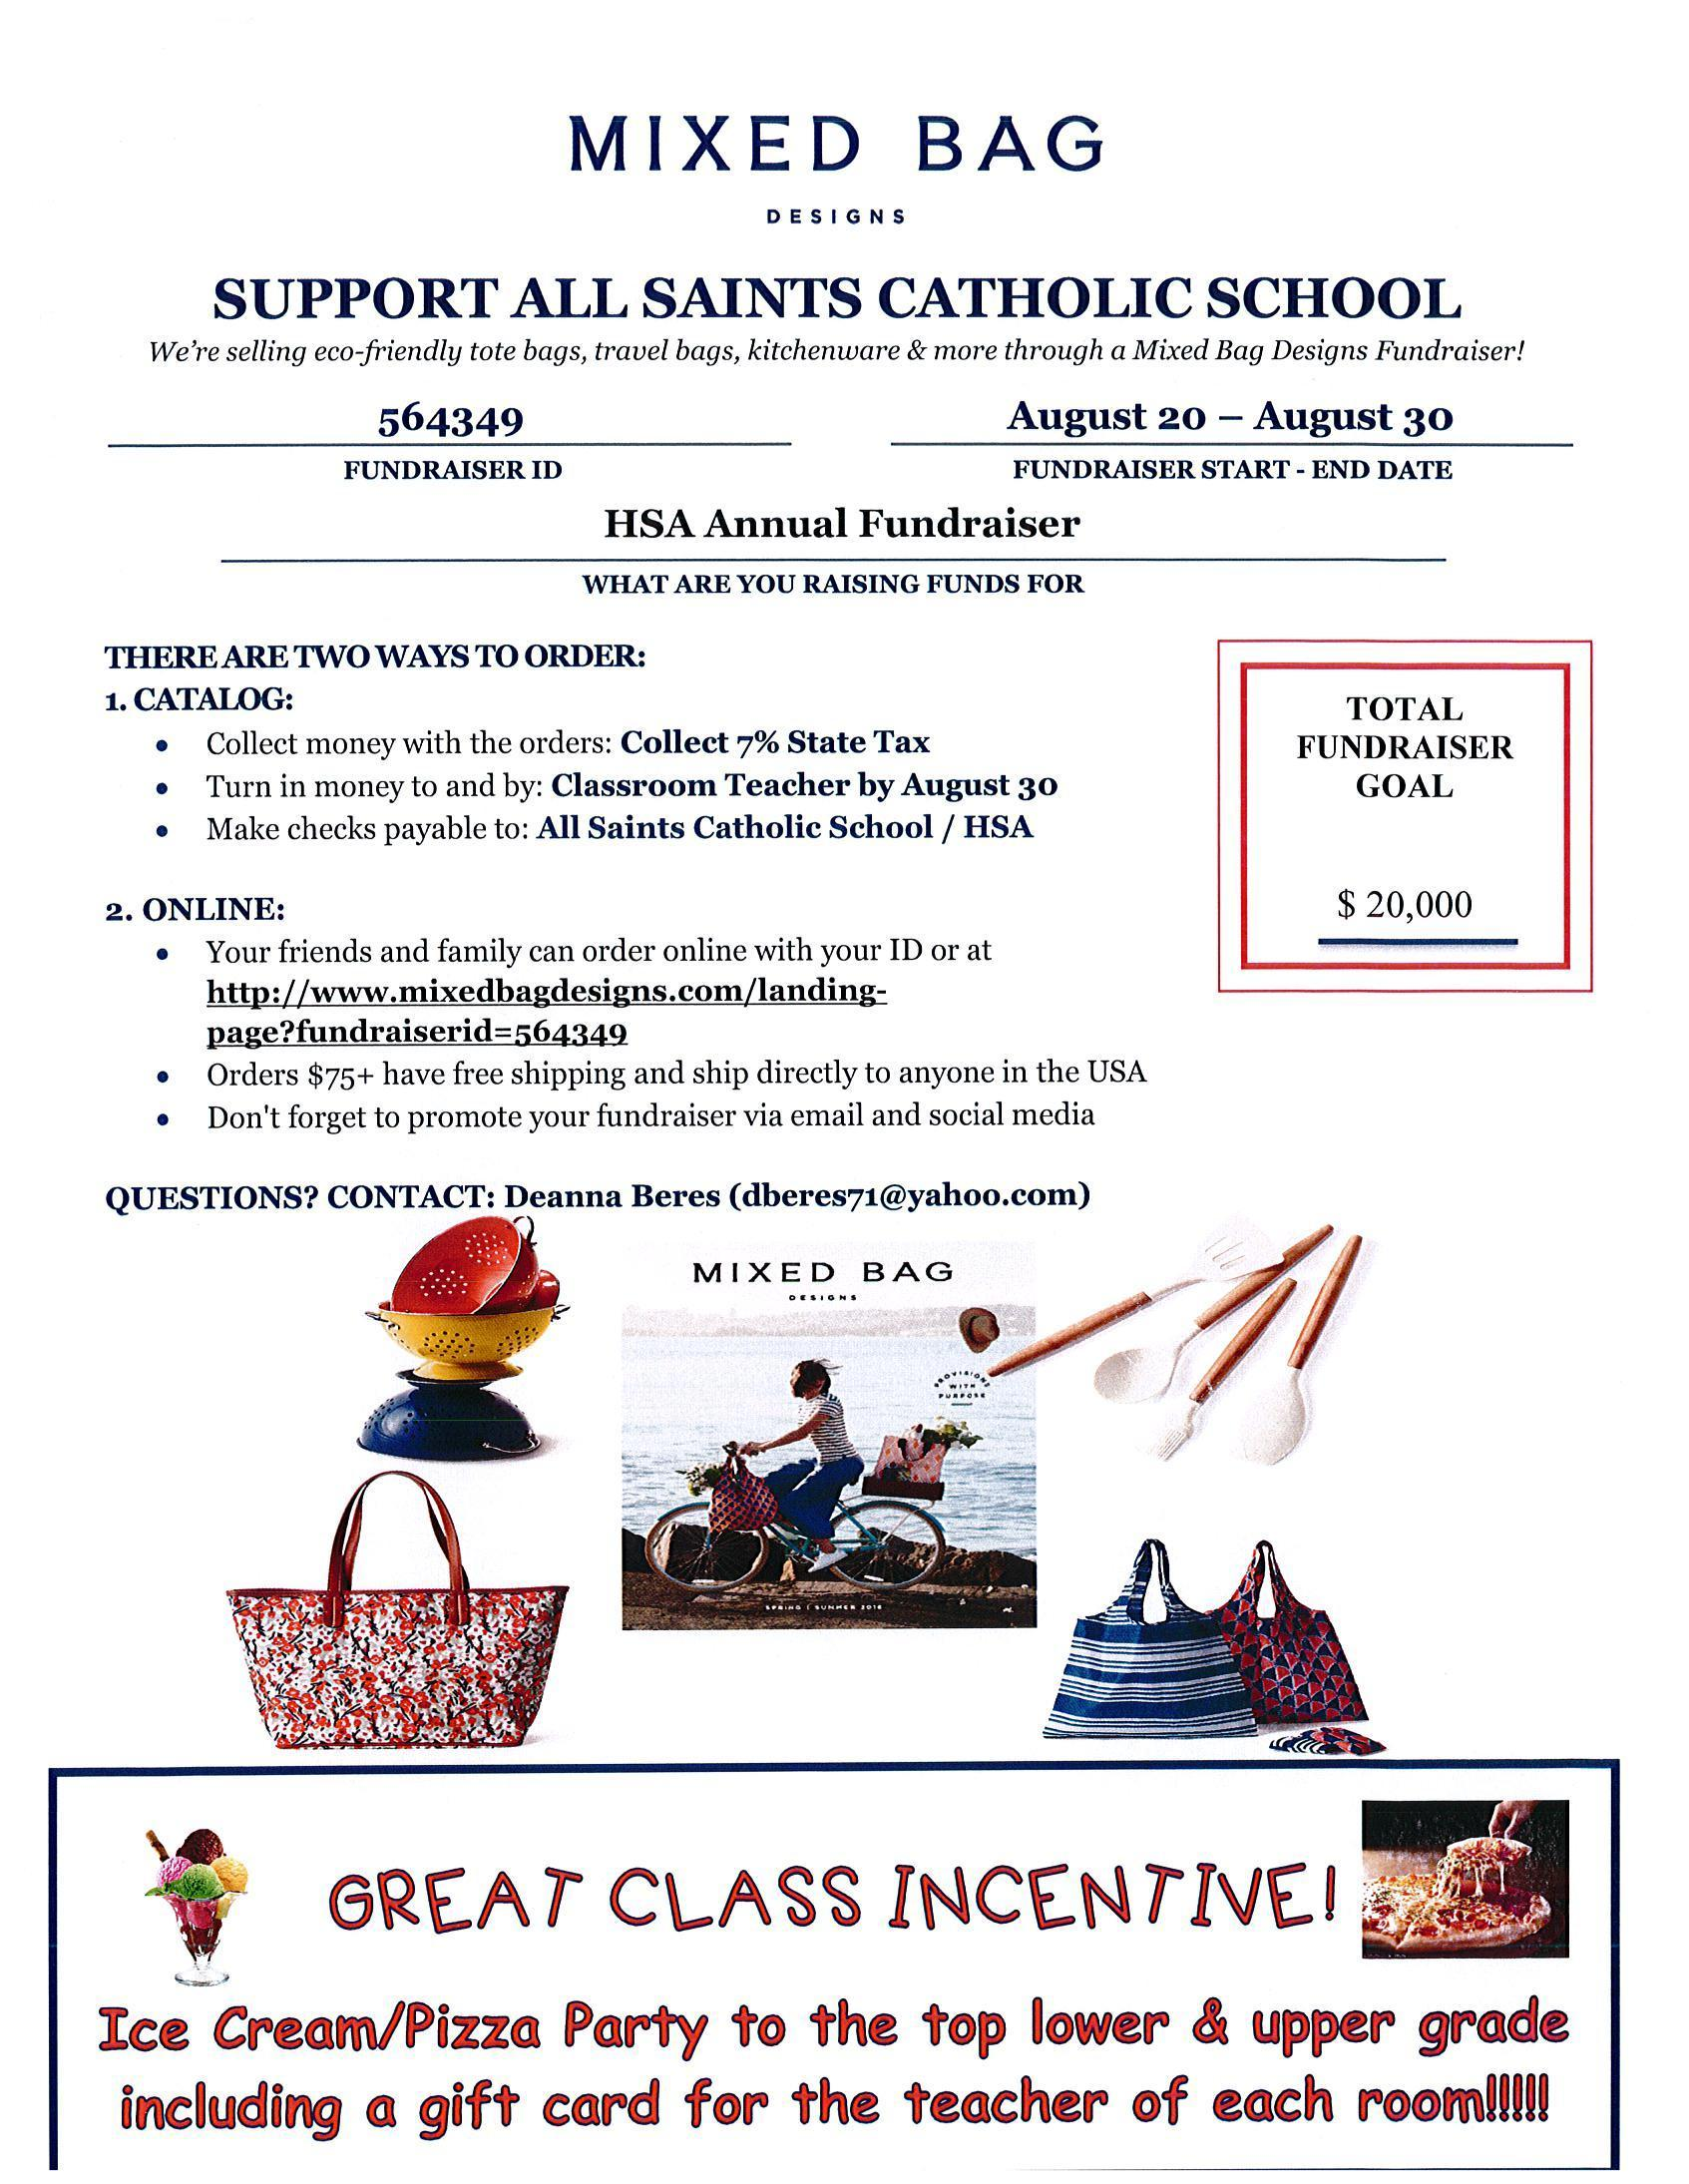 Mixed Bag Designs Fundraisers Events All Saints Catholic School